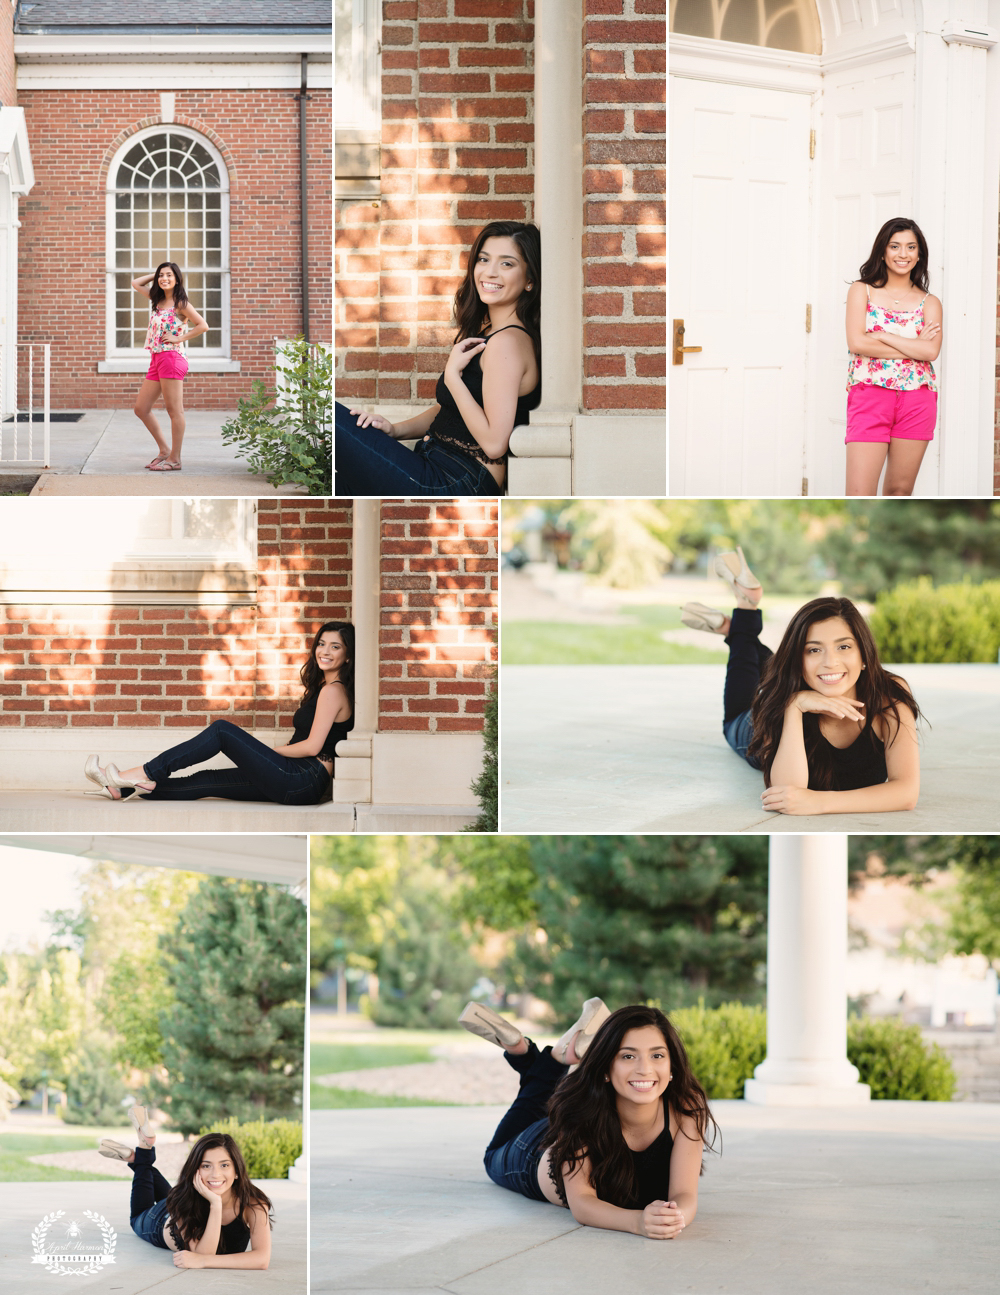 senior-photography-gardencity-ks-3.jpg